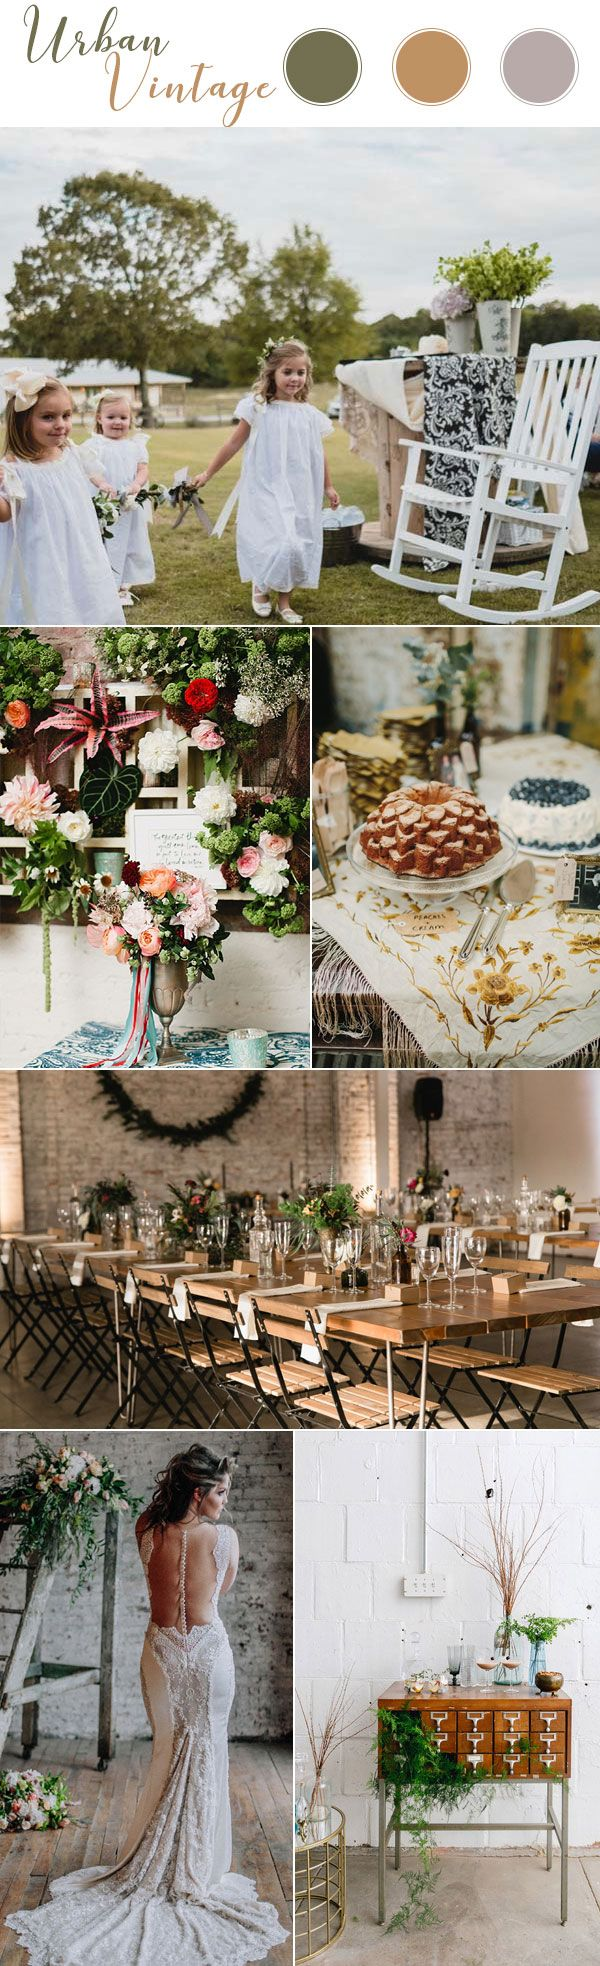 The Hottest 6 Wedding Theme Trends For